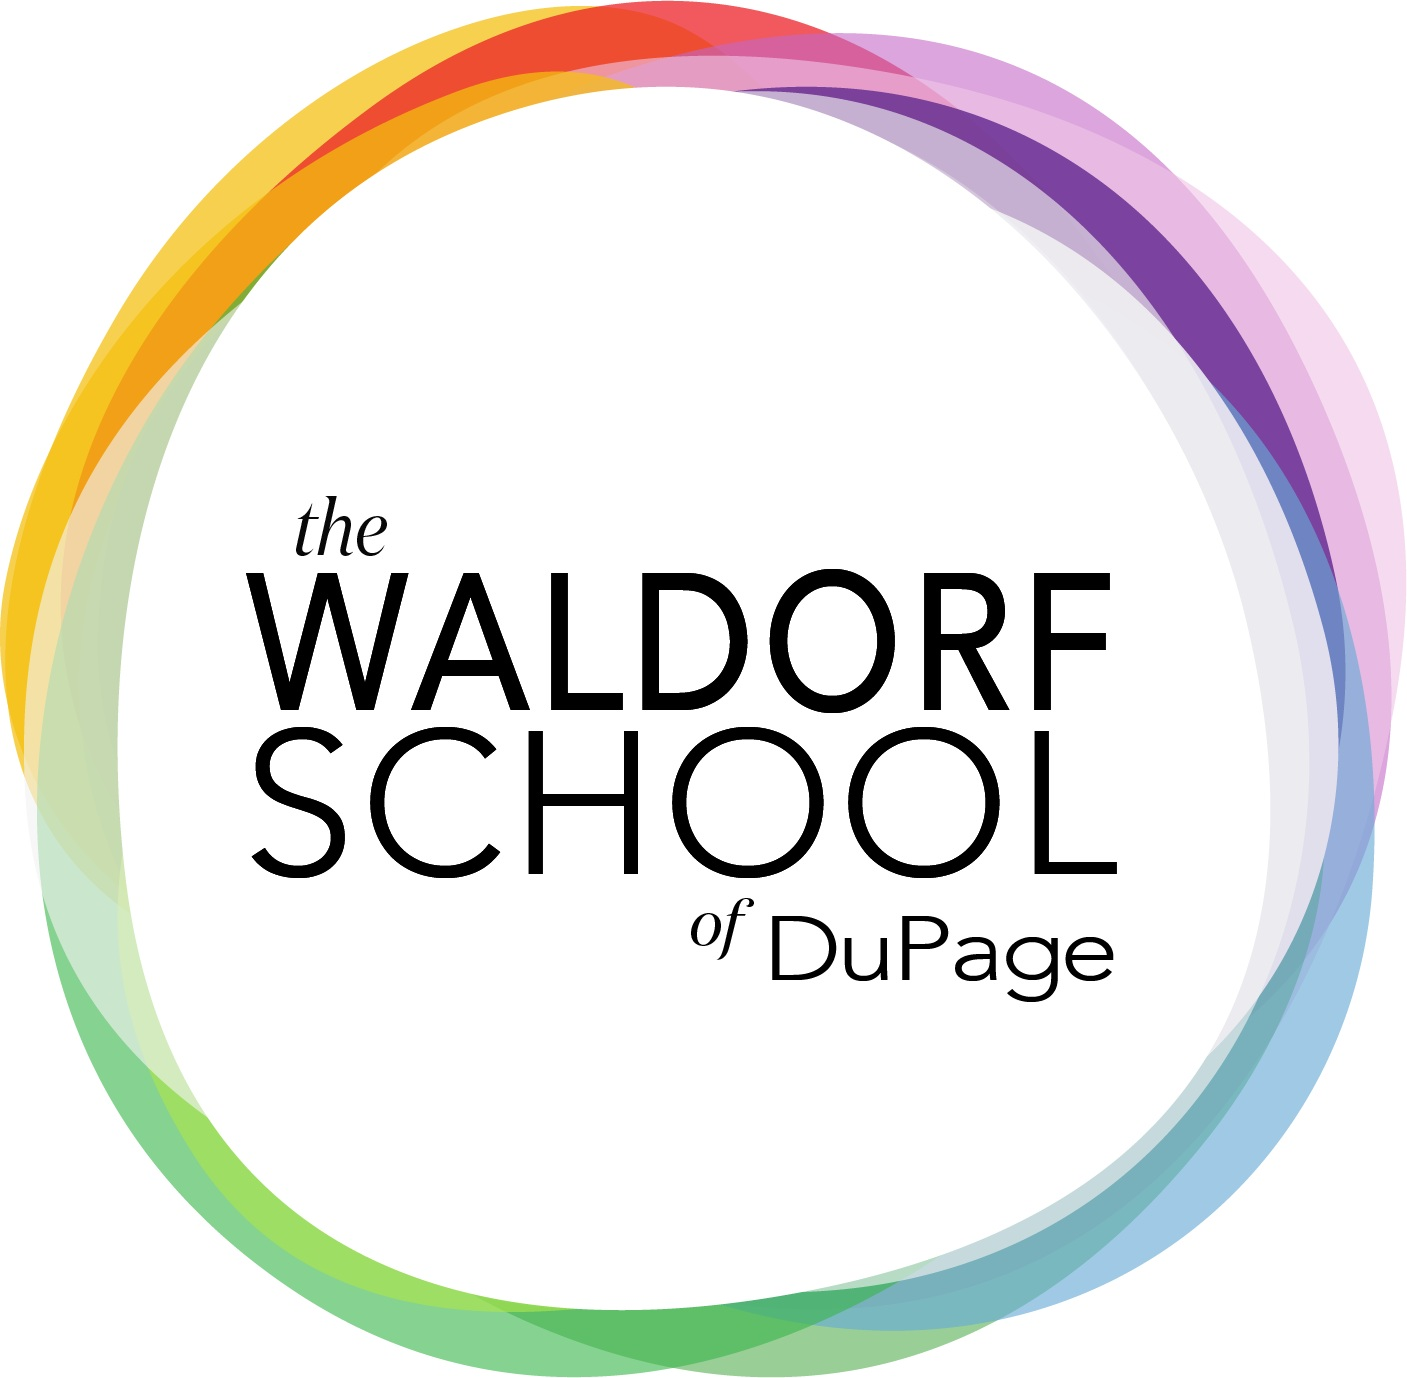 The Waldorf School of DuPage